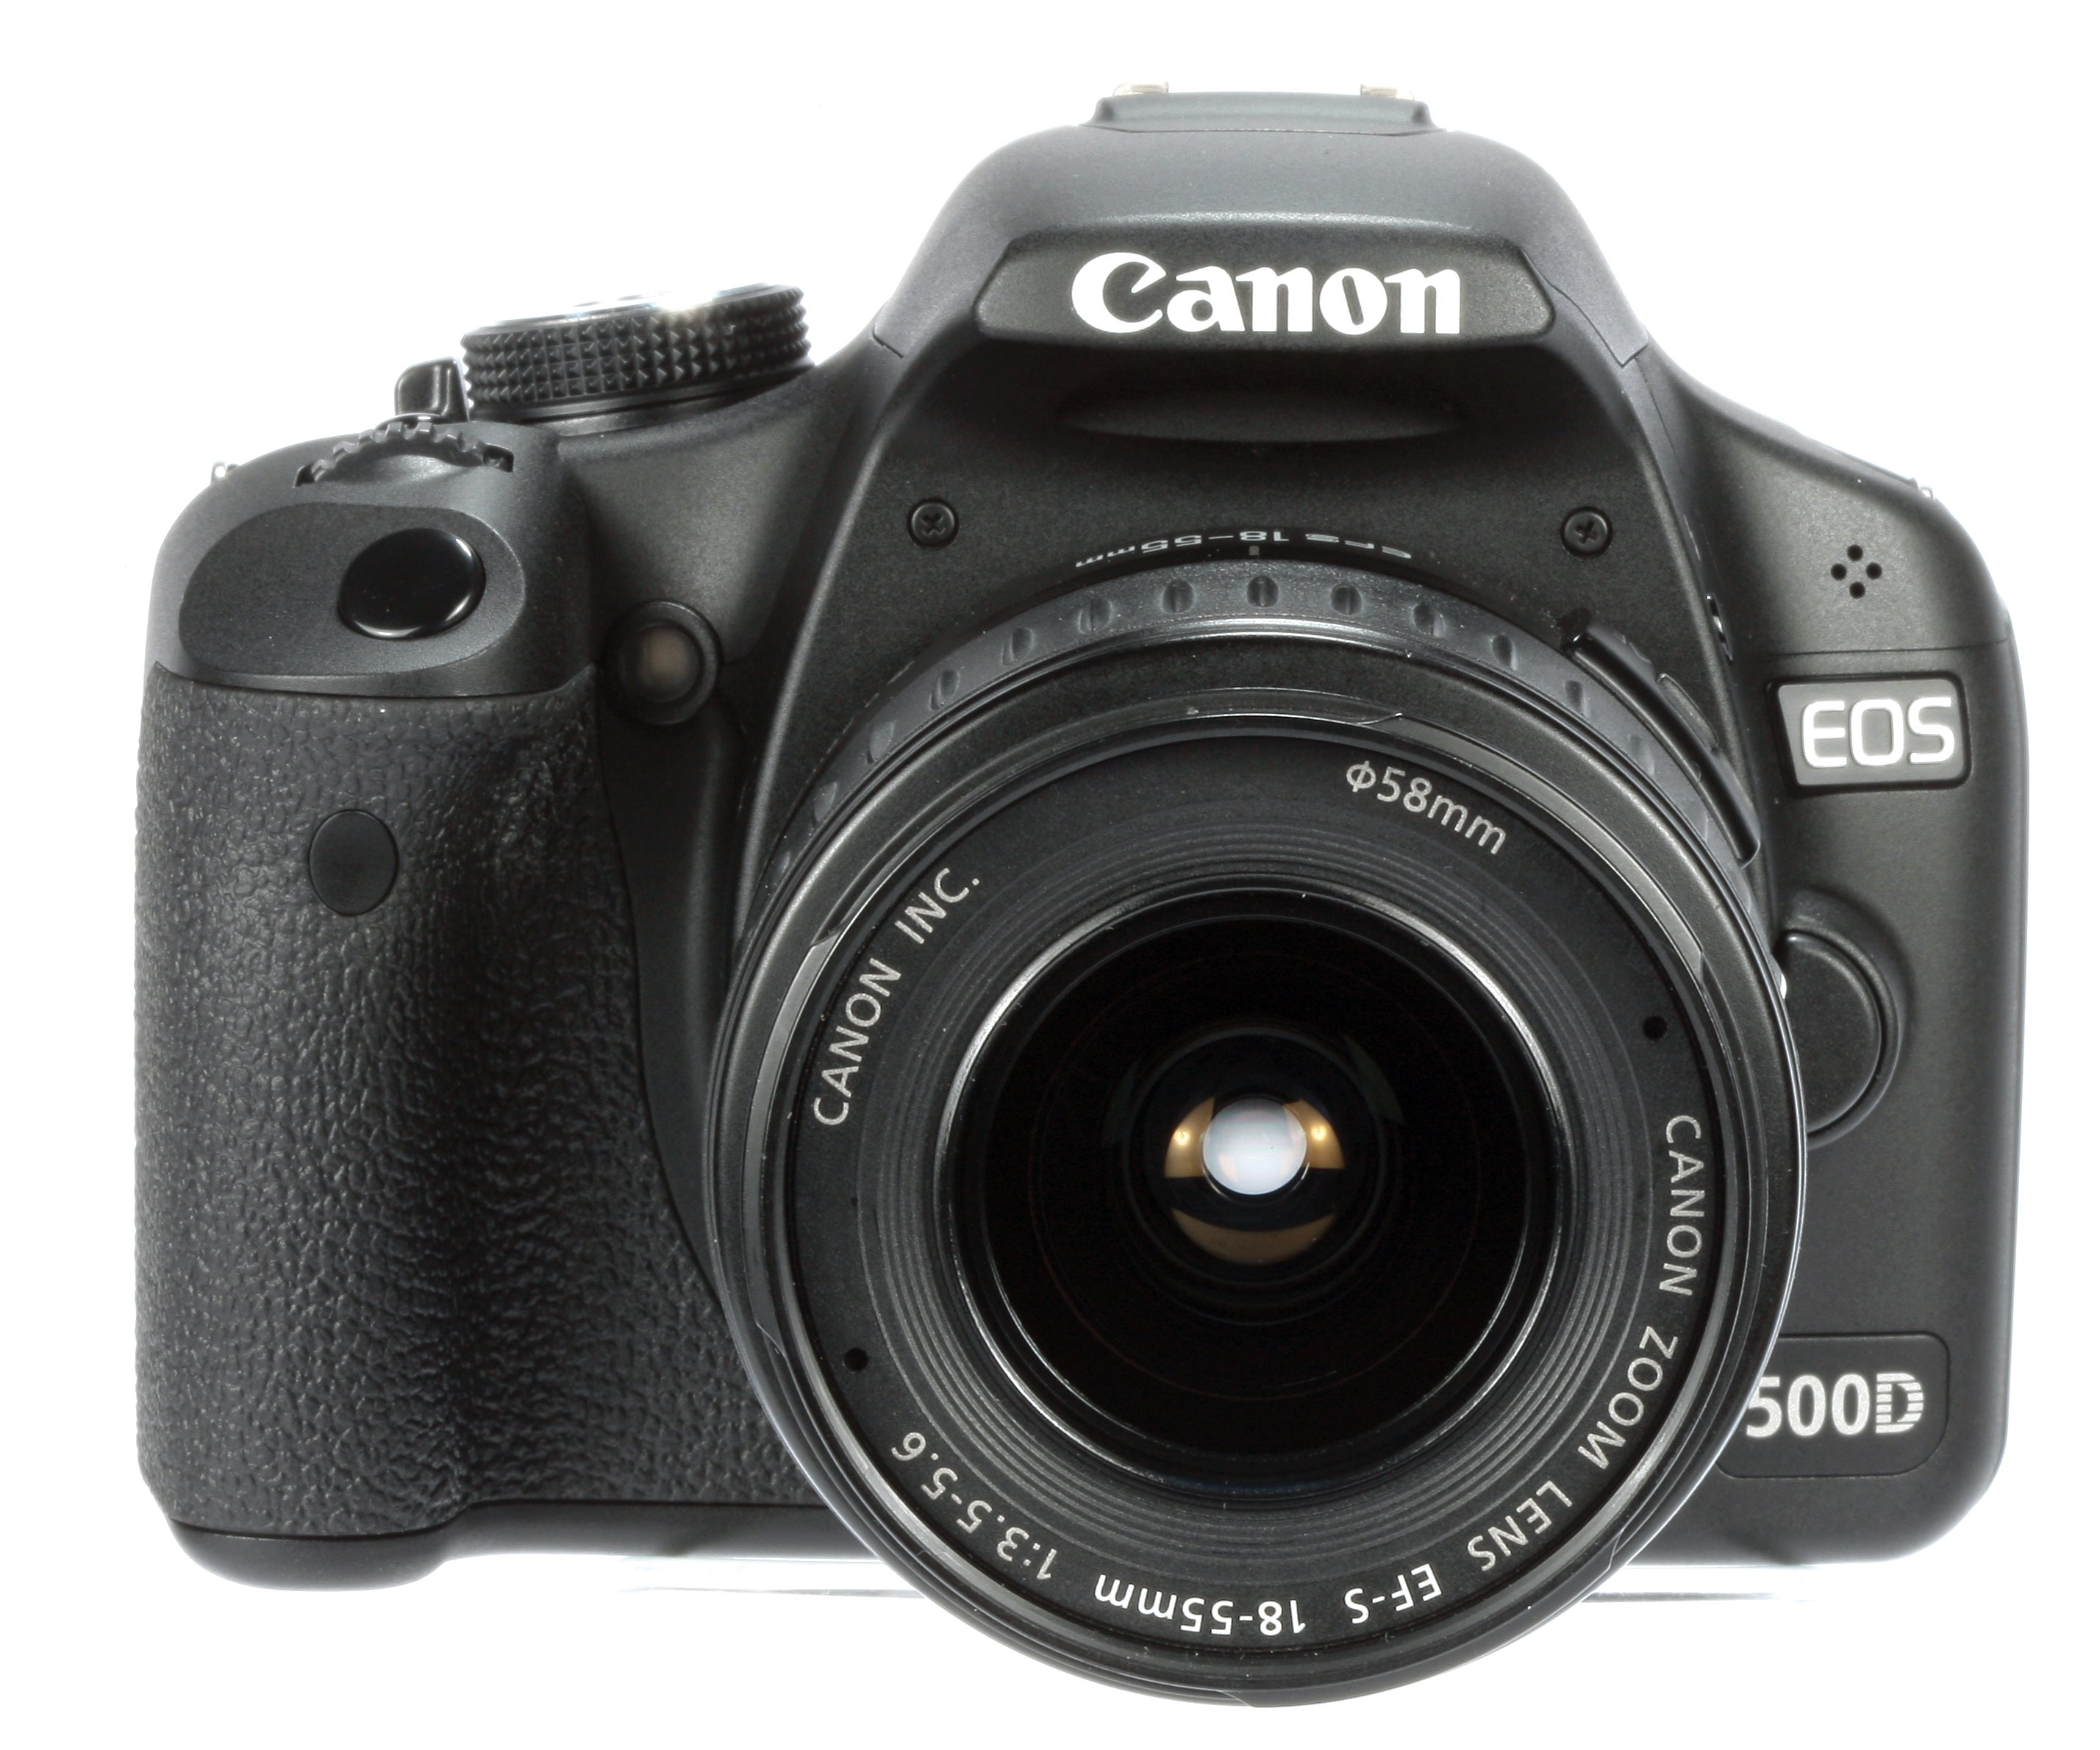 Canon 500D product shot